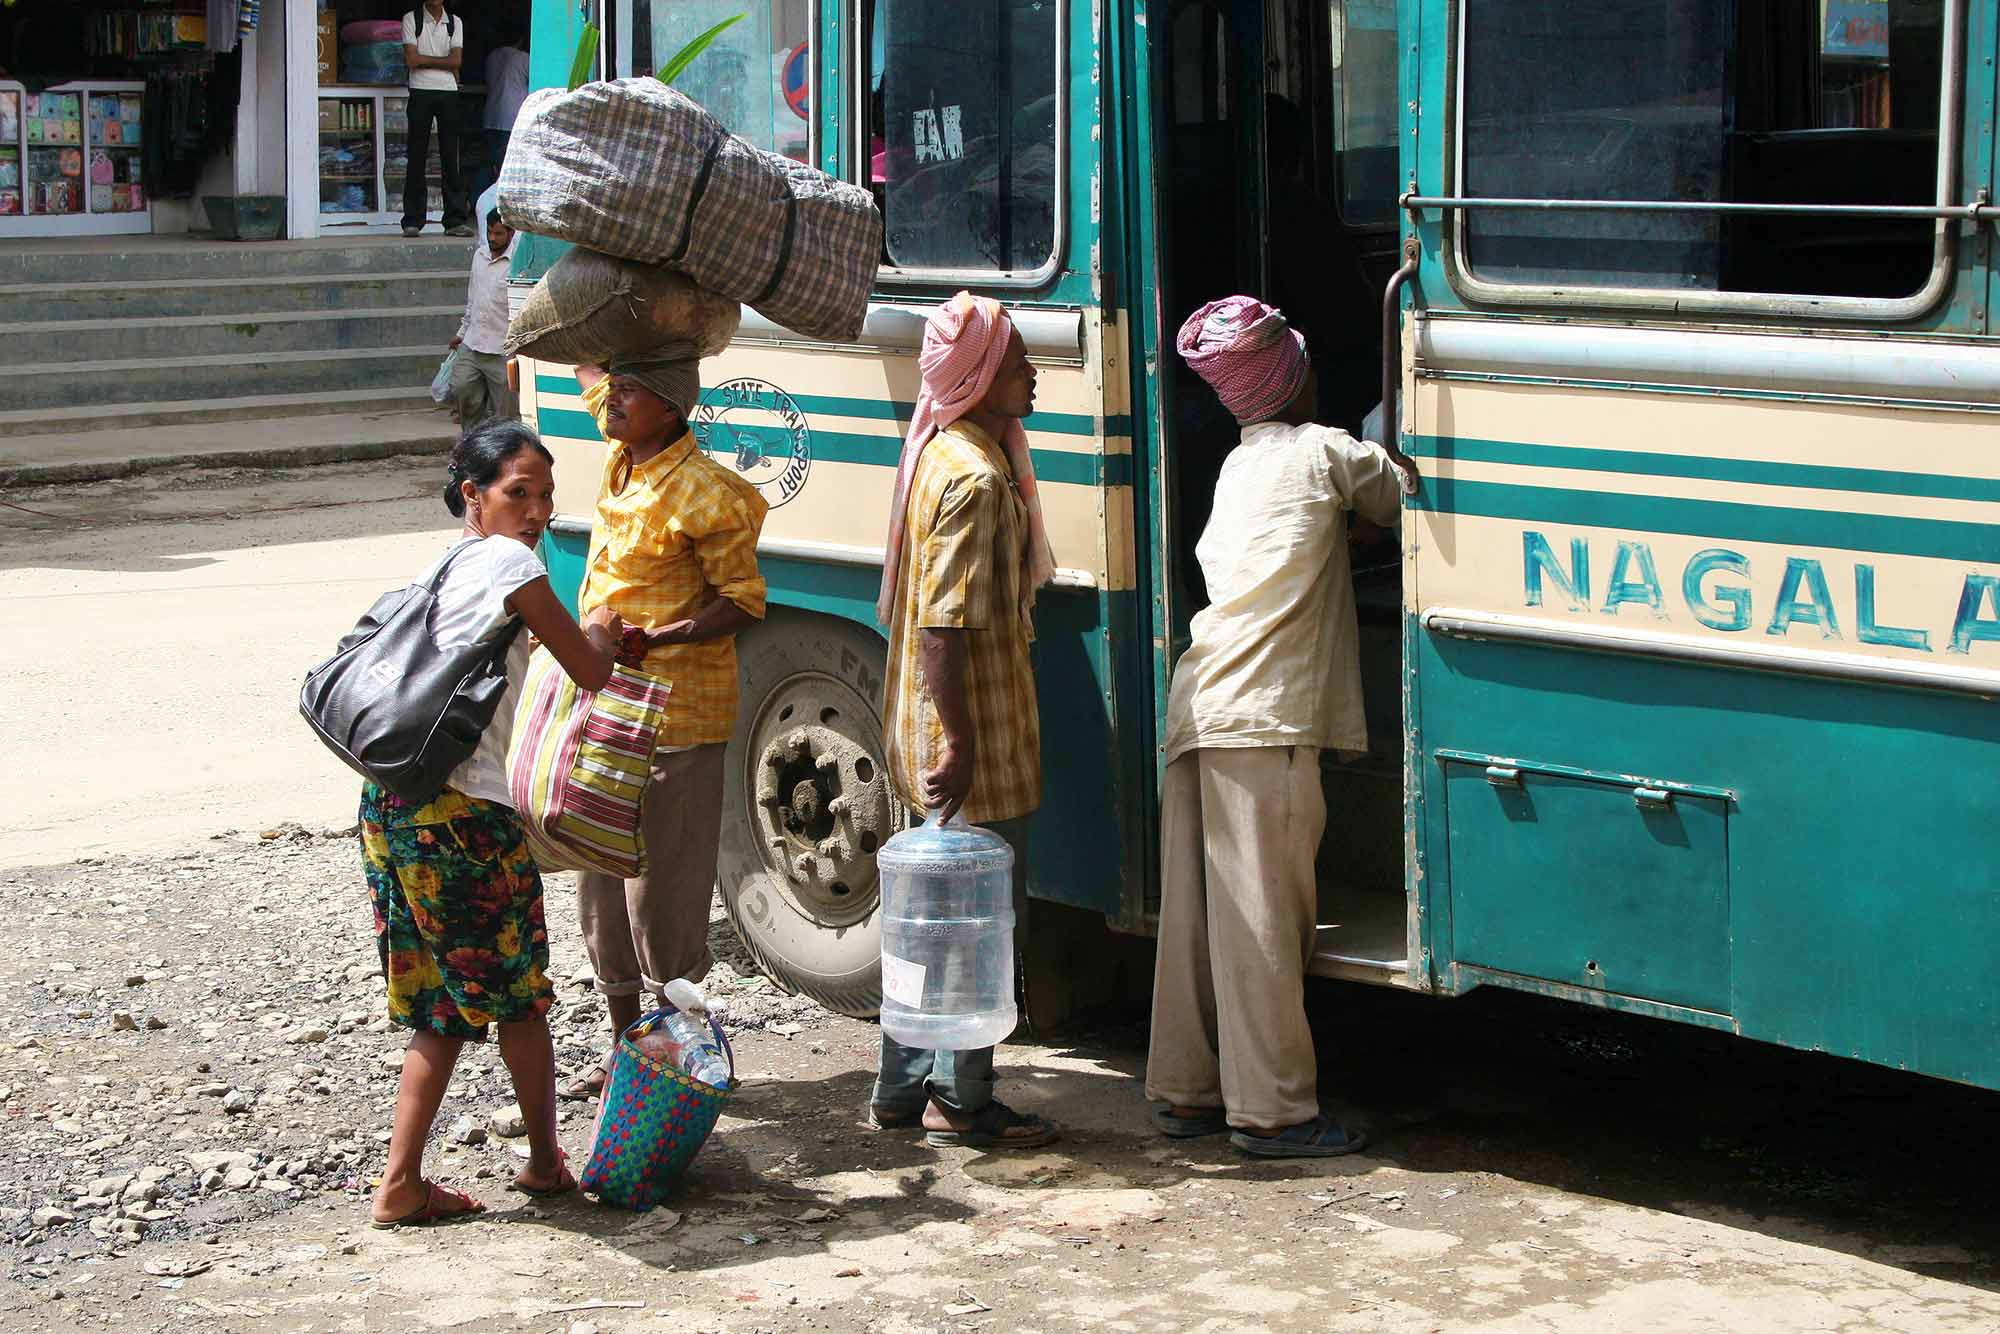 bus-transport-from-nagaland-to-gangtok-india